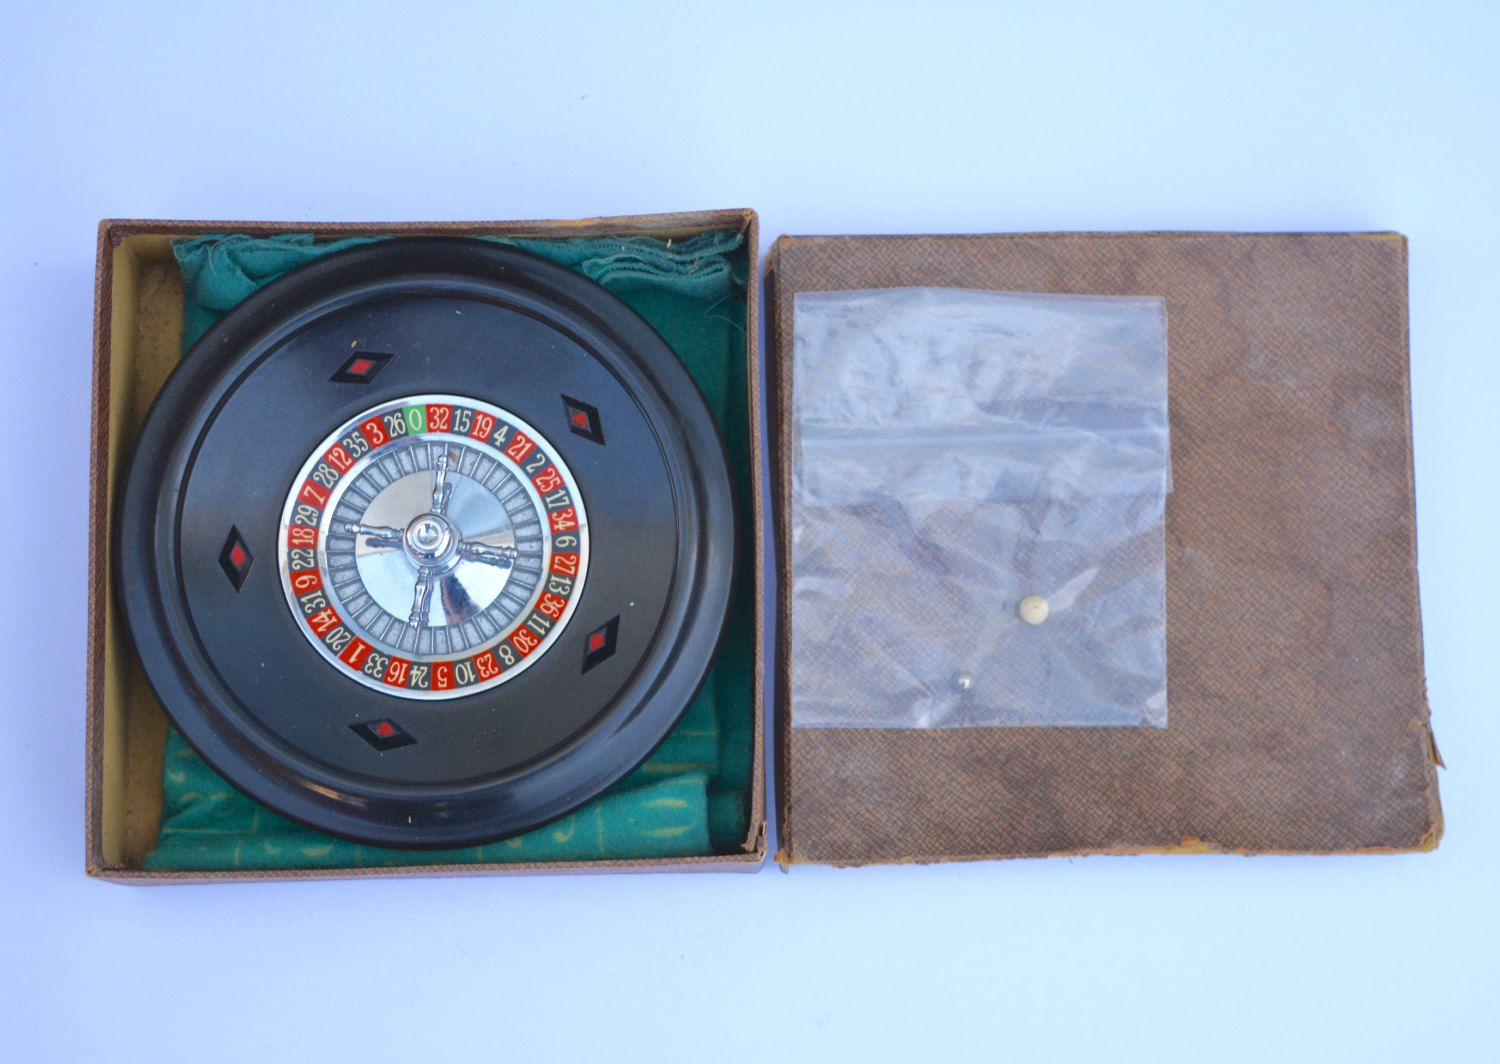 1950s K&C Roulette Set Made in England Vintage Games Room Vintage Casino Traditional Game Family Game Xmas Game Christmas by BiminiCricket on Etsy